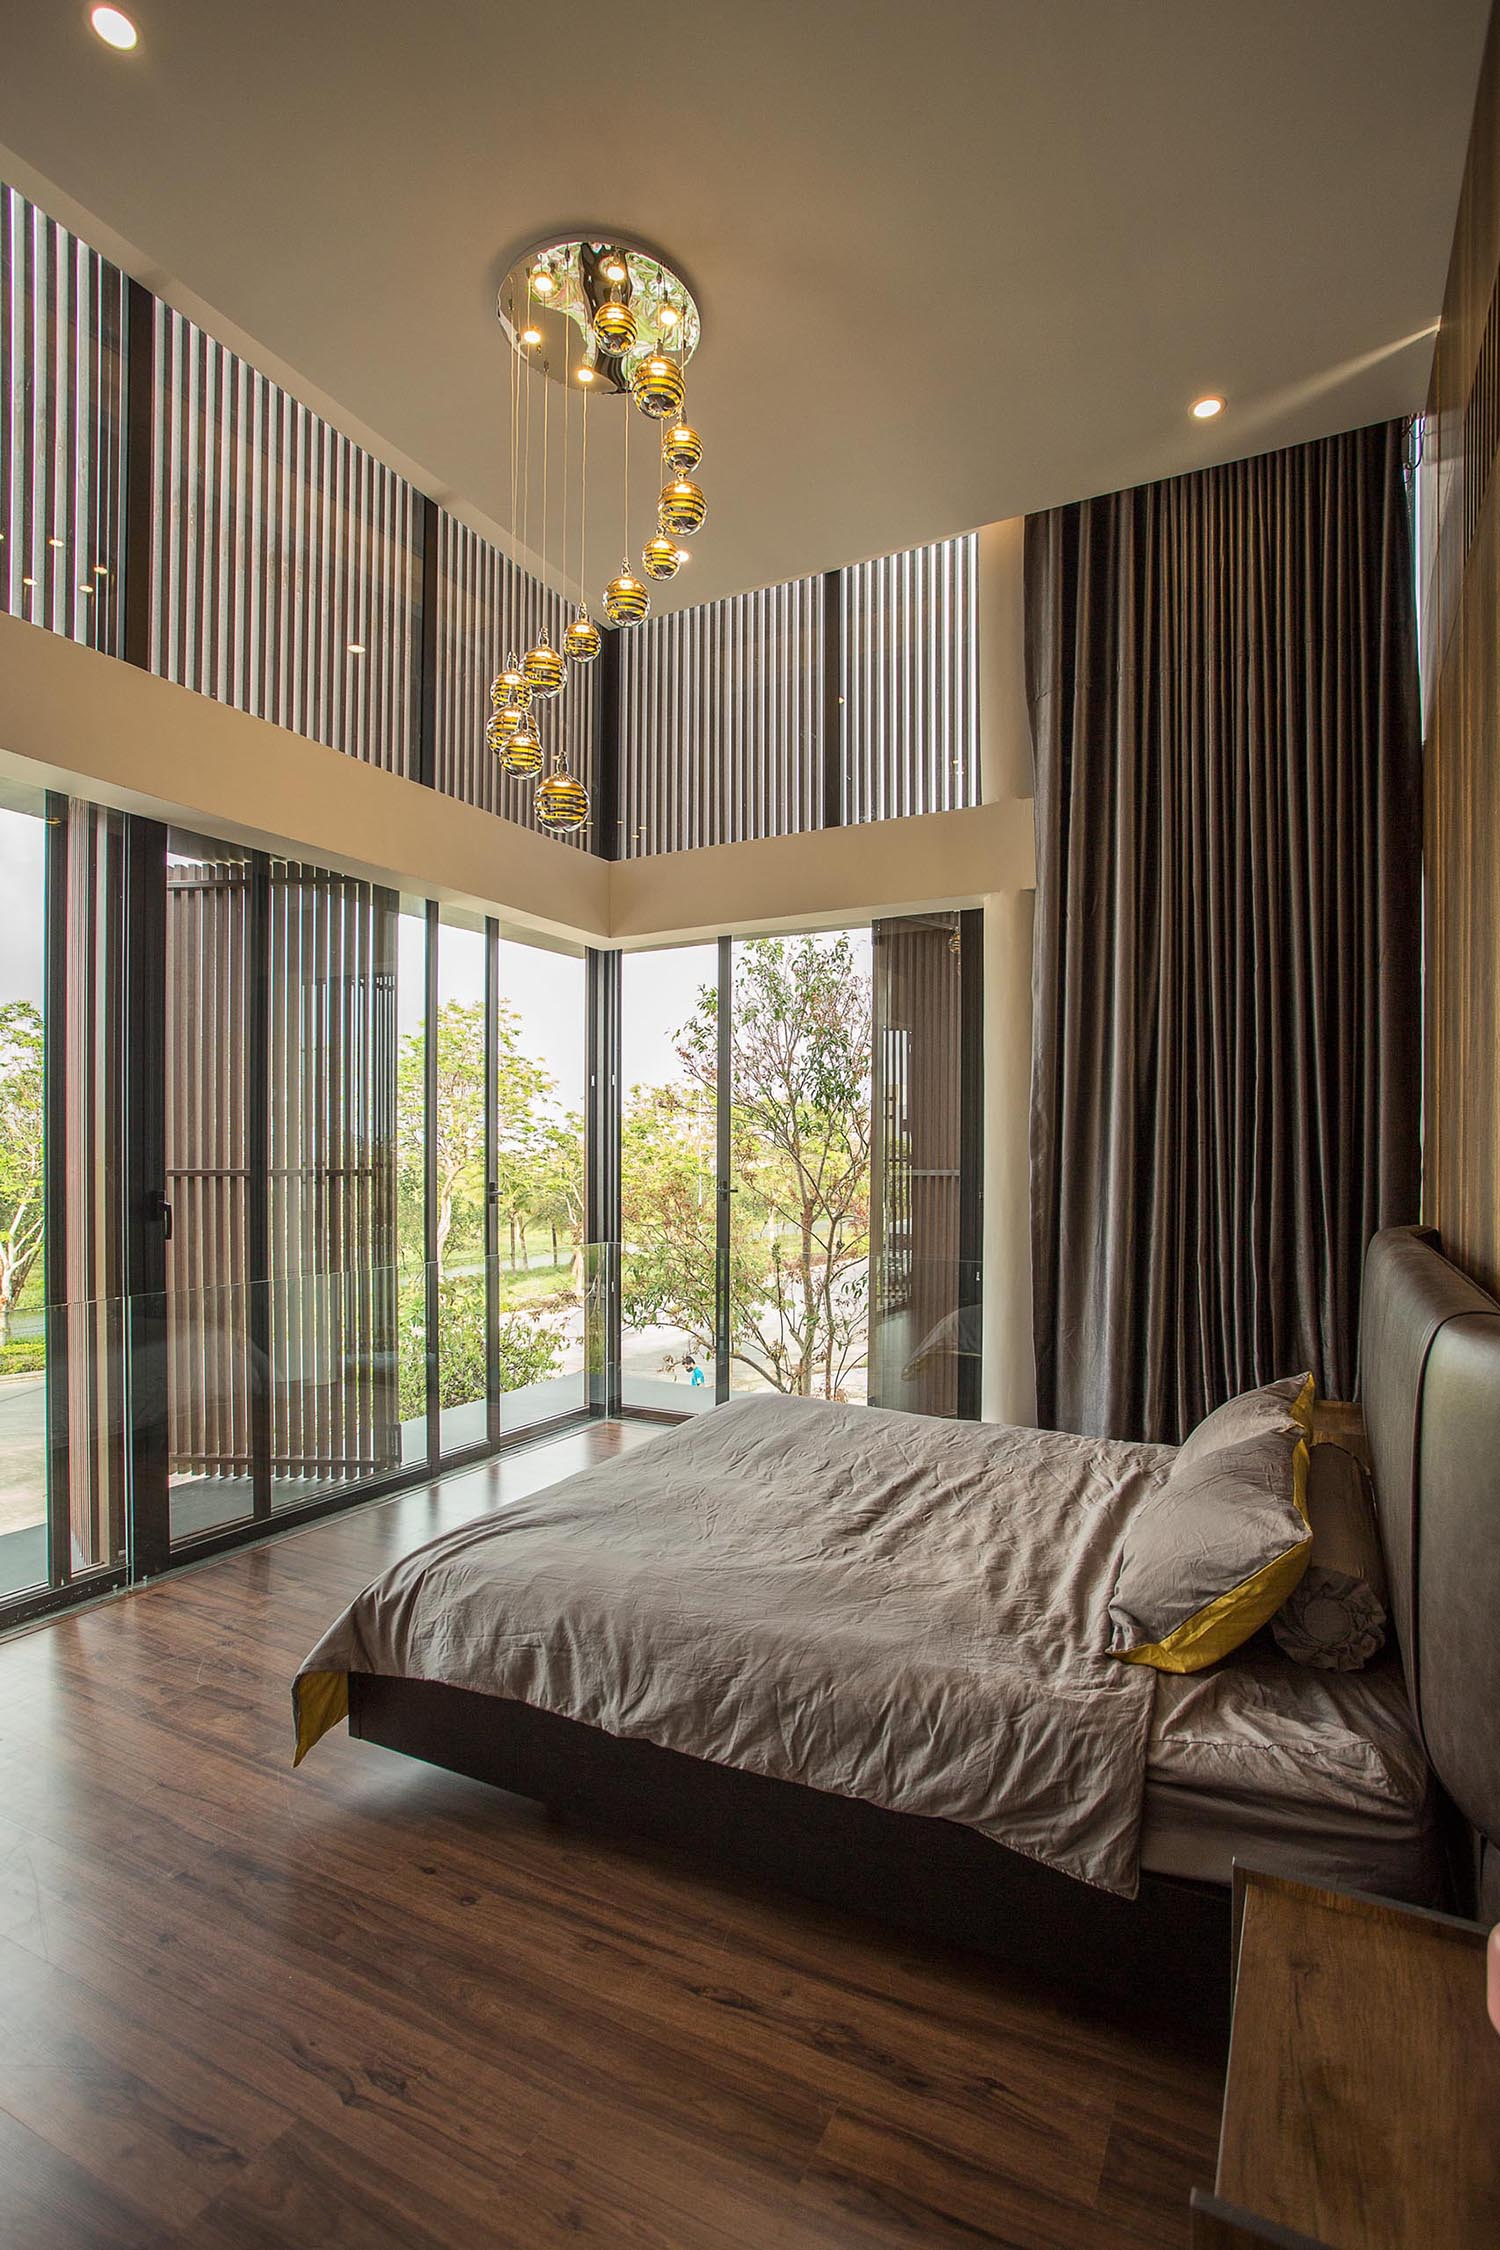 In a modern bedroom, the high ceiling allows for a grand appearance, while a wood accent wall has strips of LED lights that run from the ceiling to the floor.